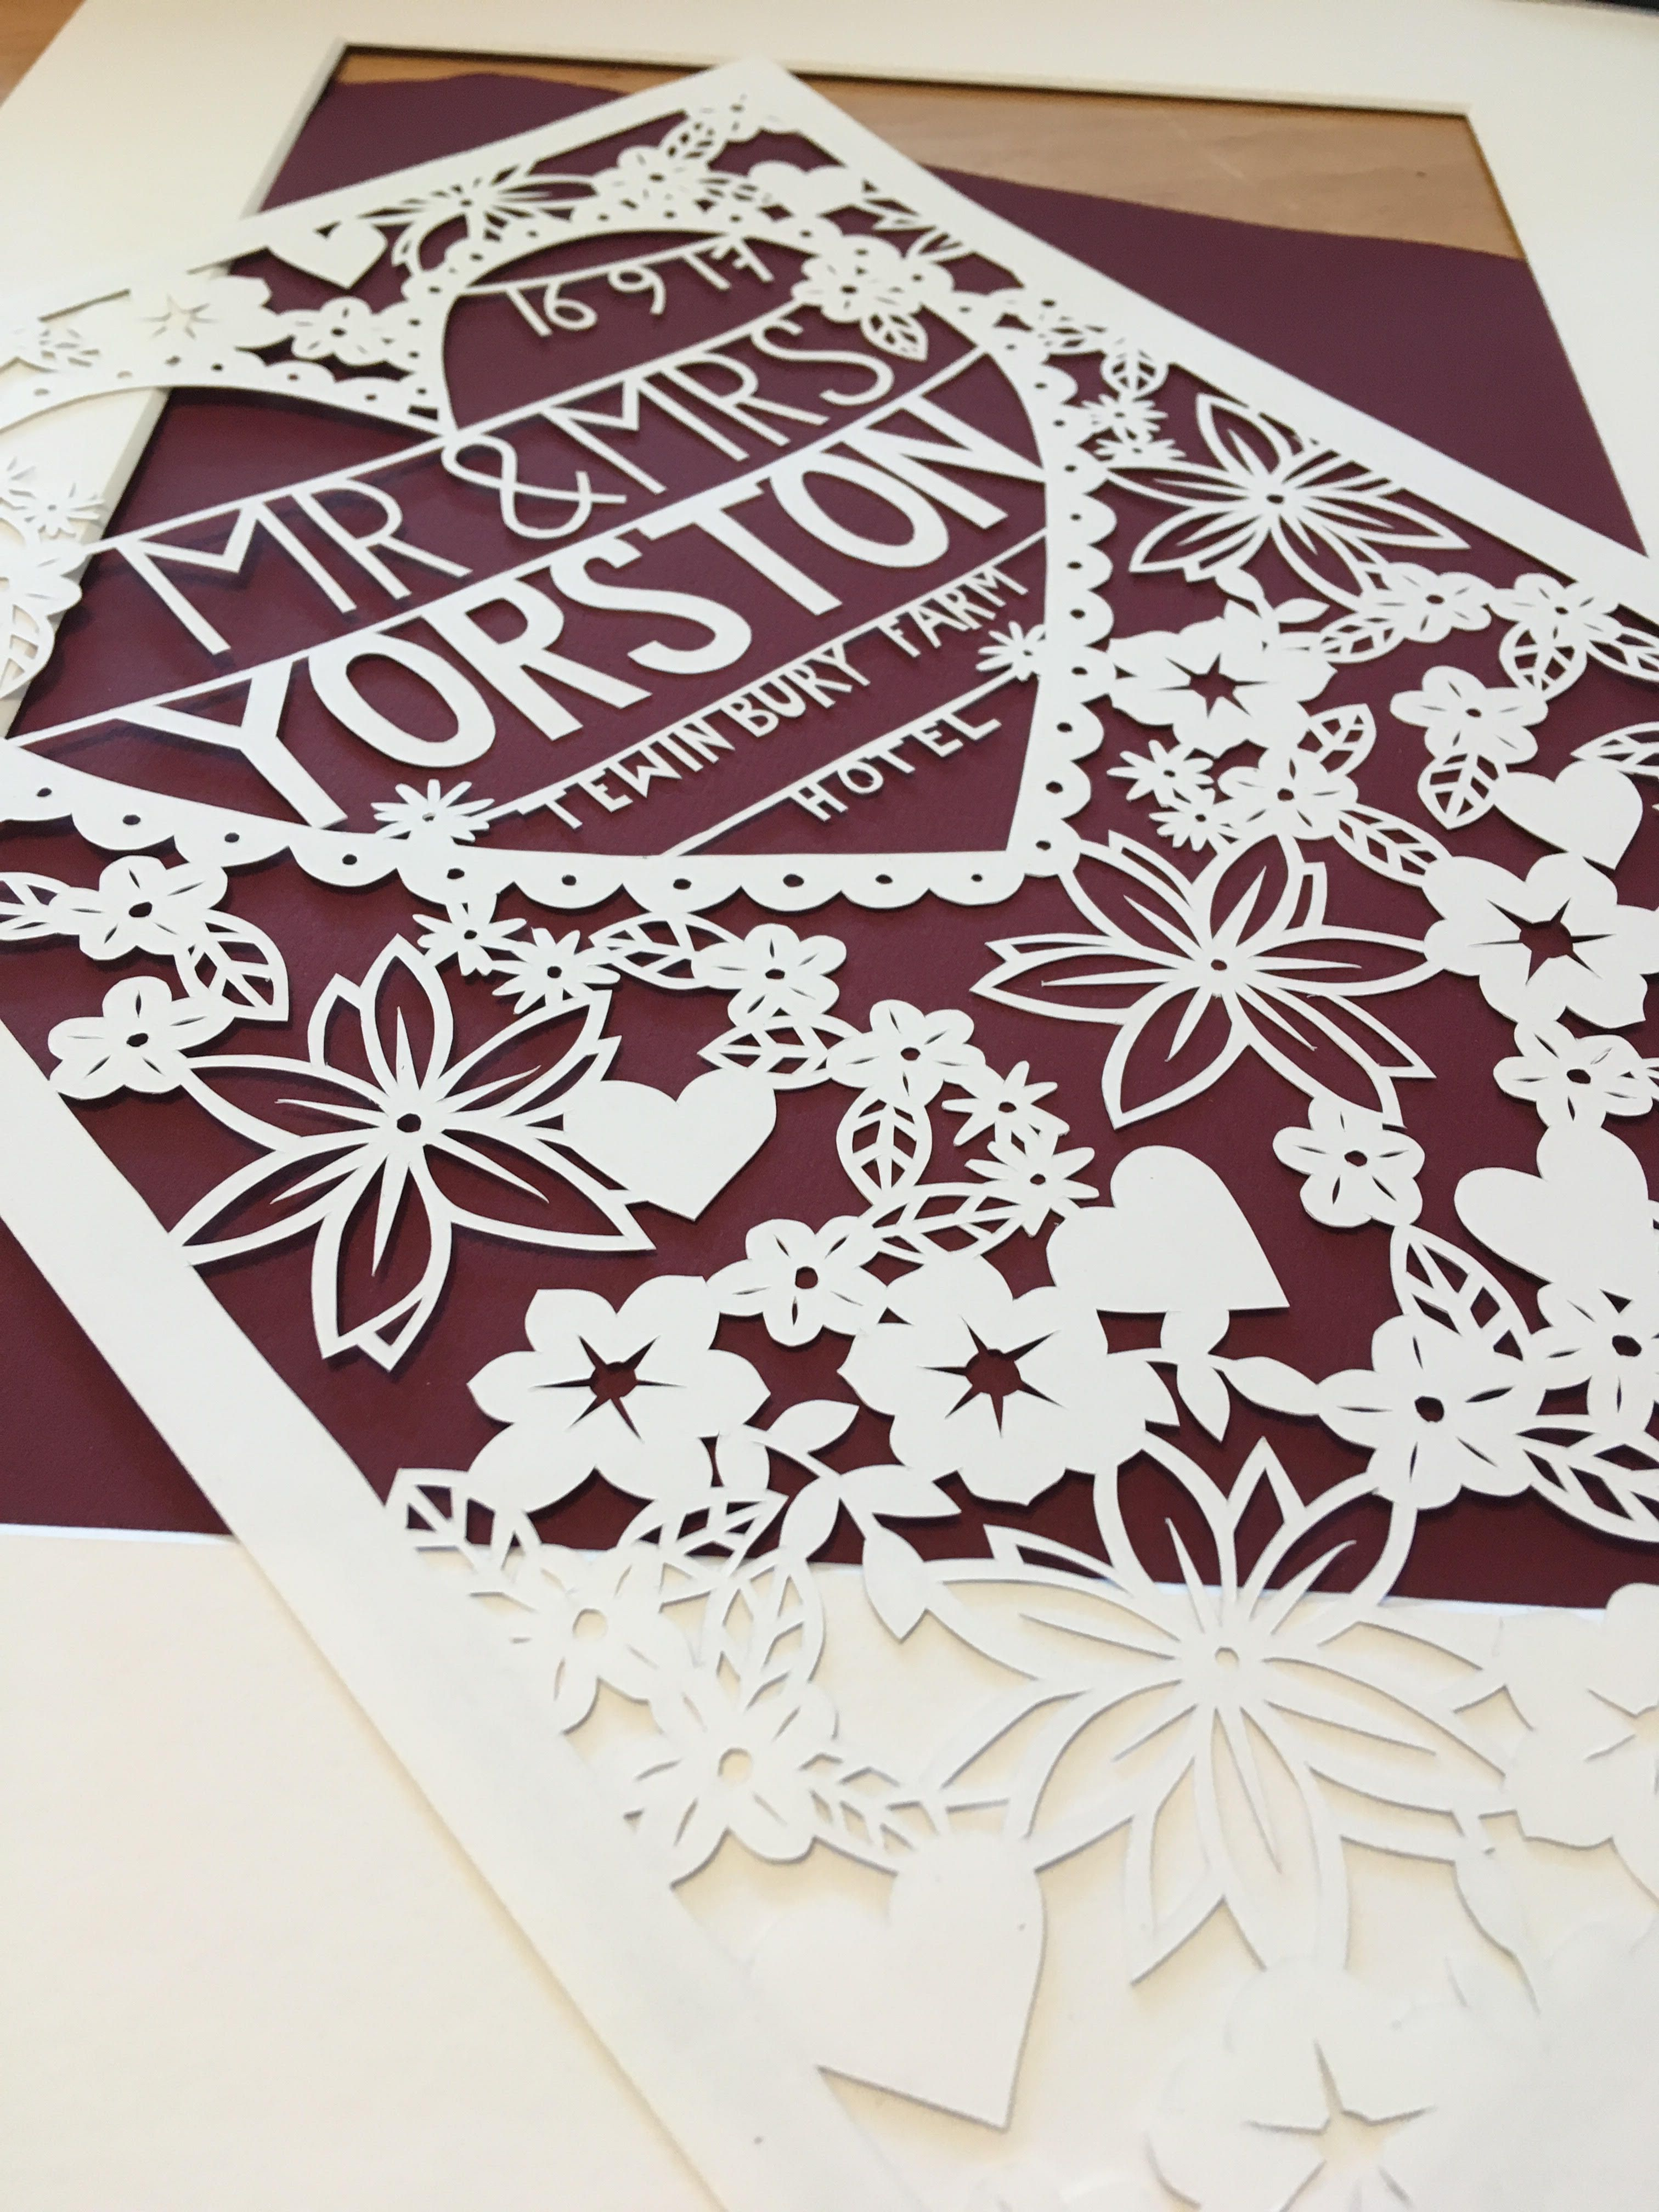 First Paper Wedding Anniversary Gift Ideas from UK based